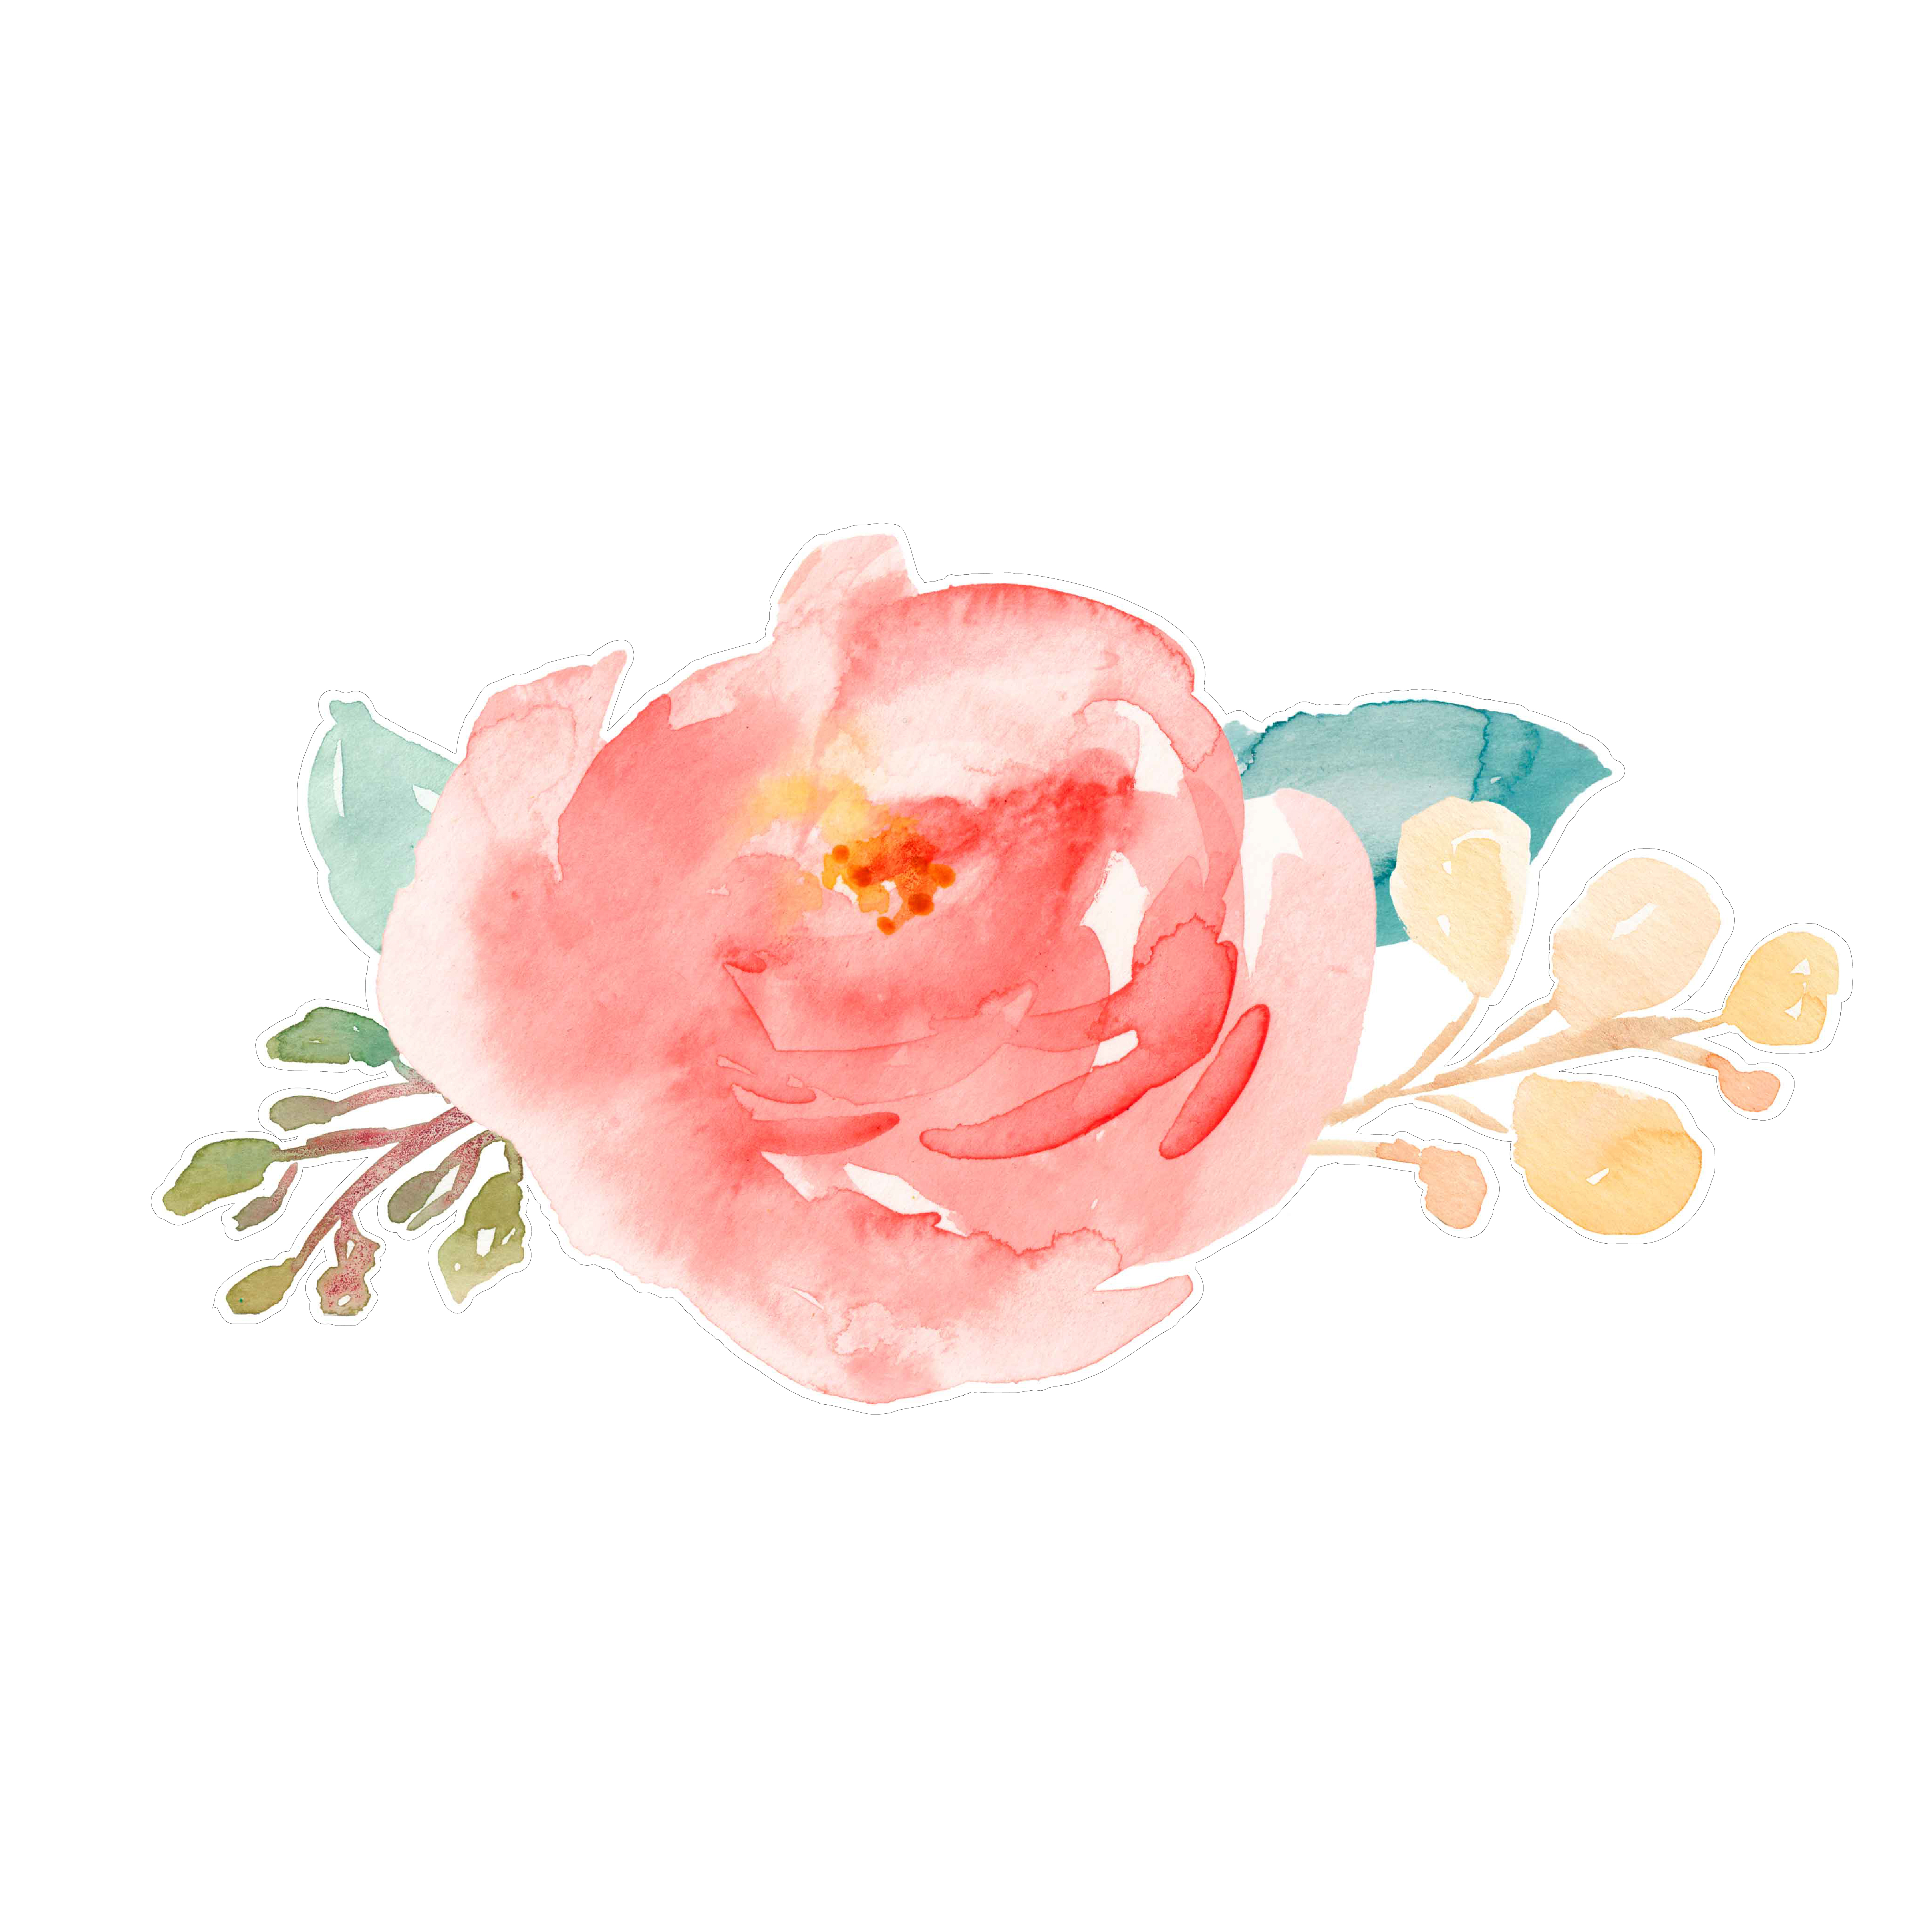 5100x5100 Watercolor Painting Flowers Images Cute Painted Flowers Svg Cut